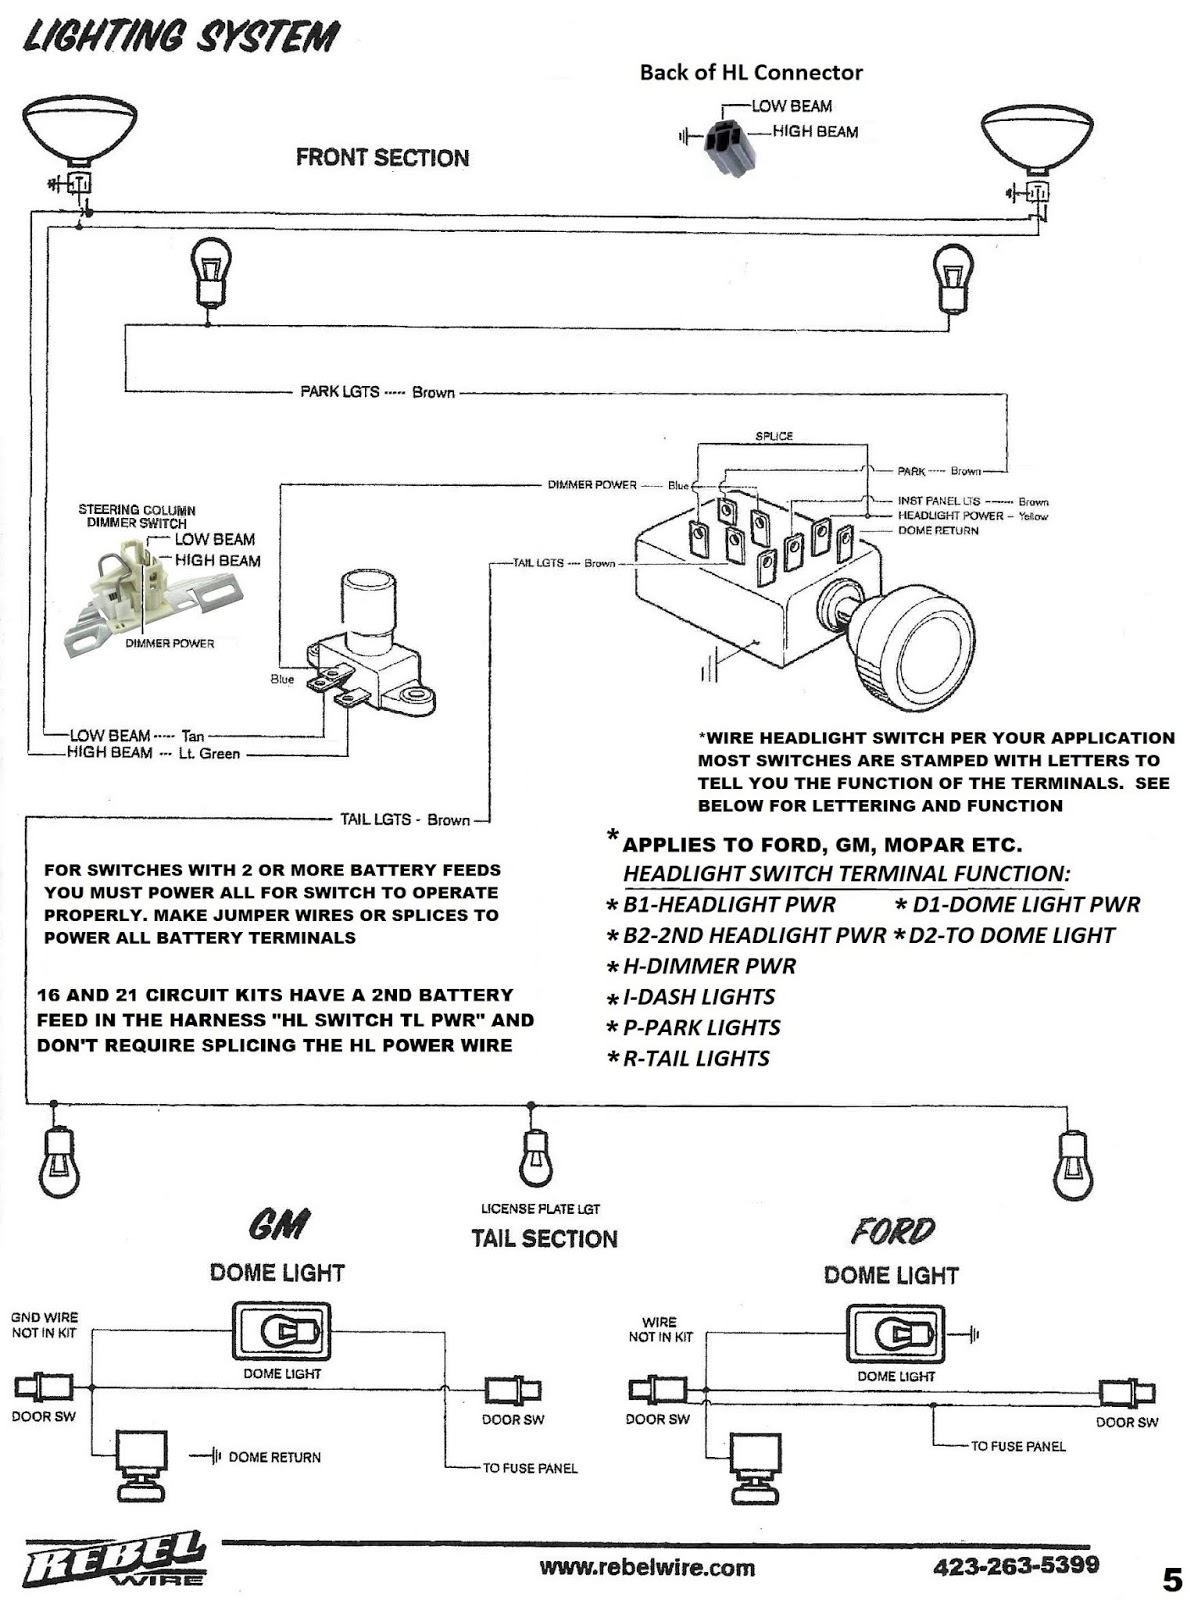 [SCHEMATICS_48DE]  Cadillac Headlight Wiring - Wired Network Diagram Office for Wiring Diagram  Schematics | Cadillac Ats Headlight Wiring Diagram |  | Wiring Diagram Schematics